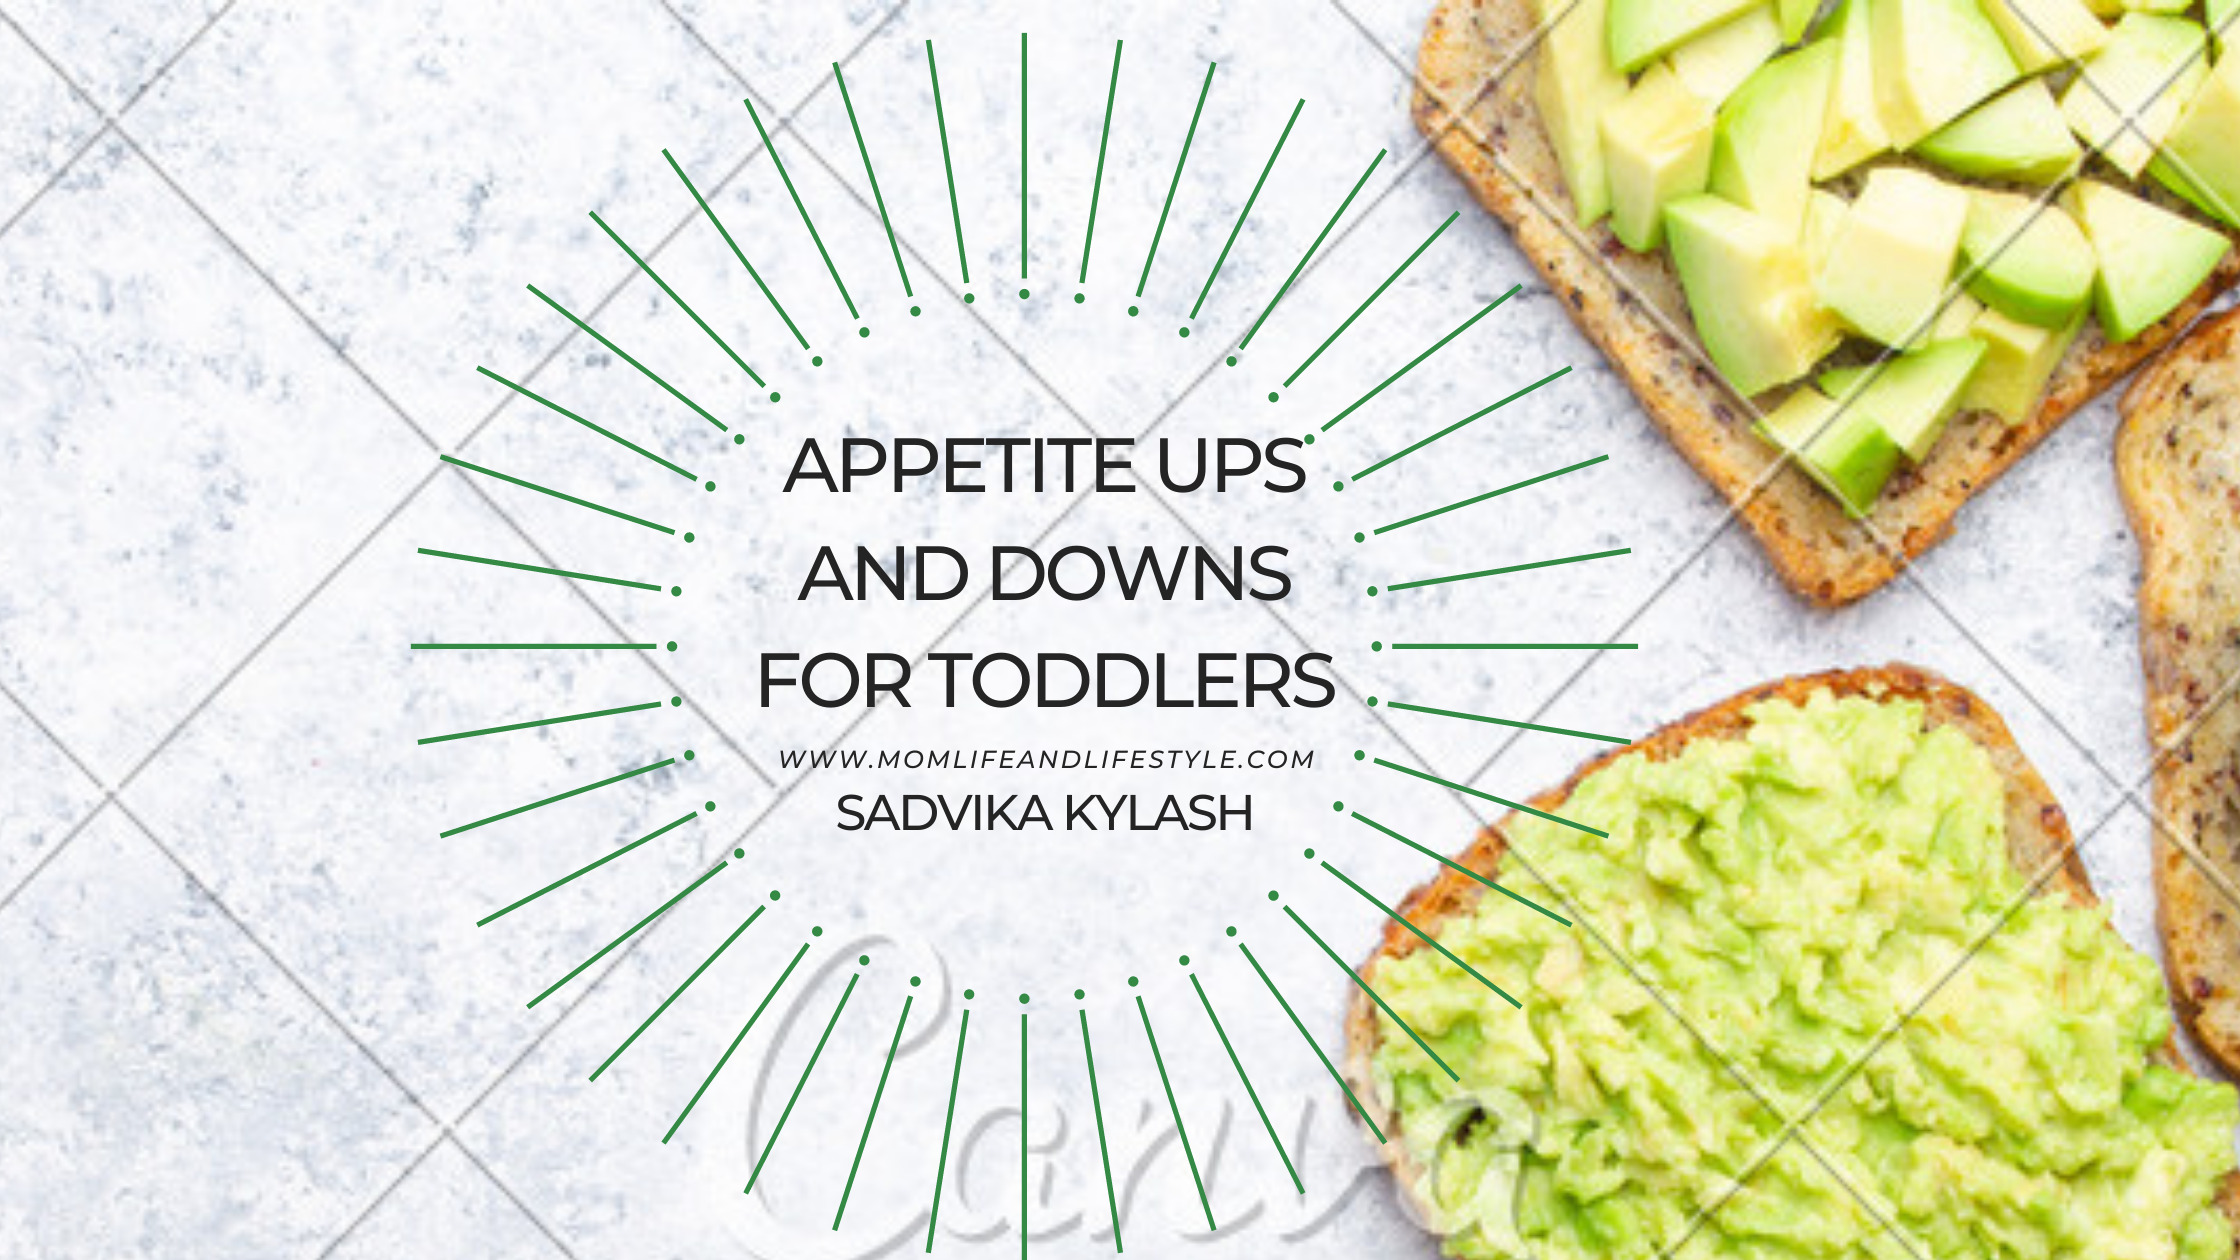 Appetite Ups and Downs for Toddlers